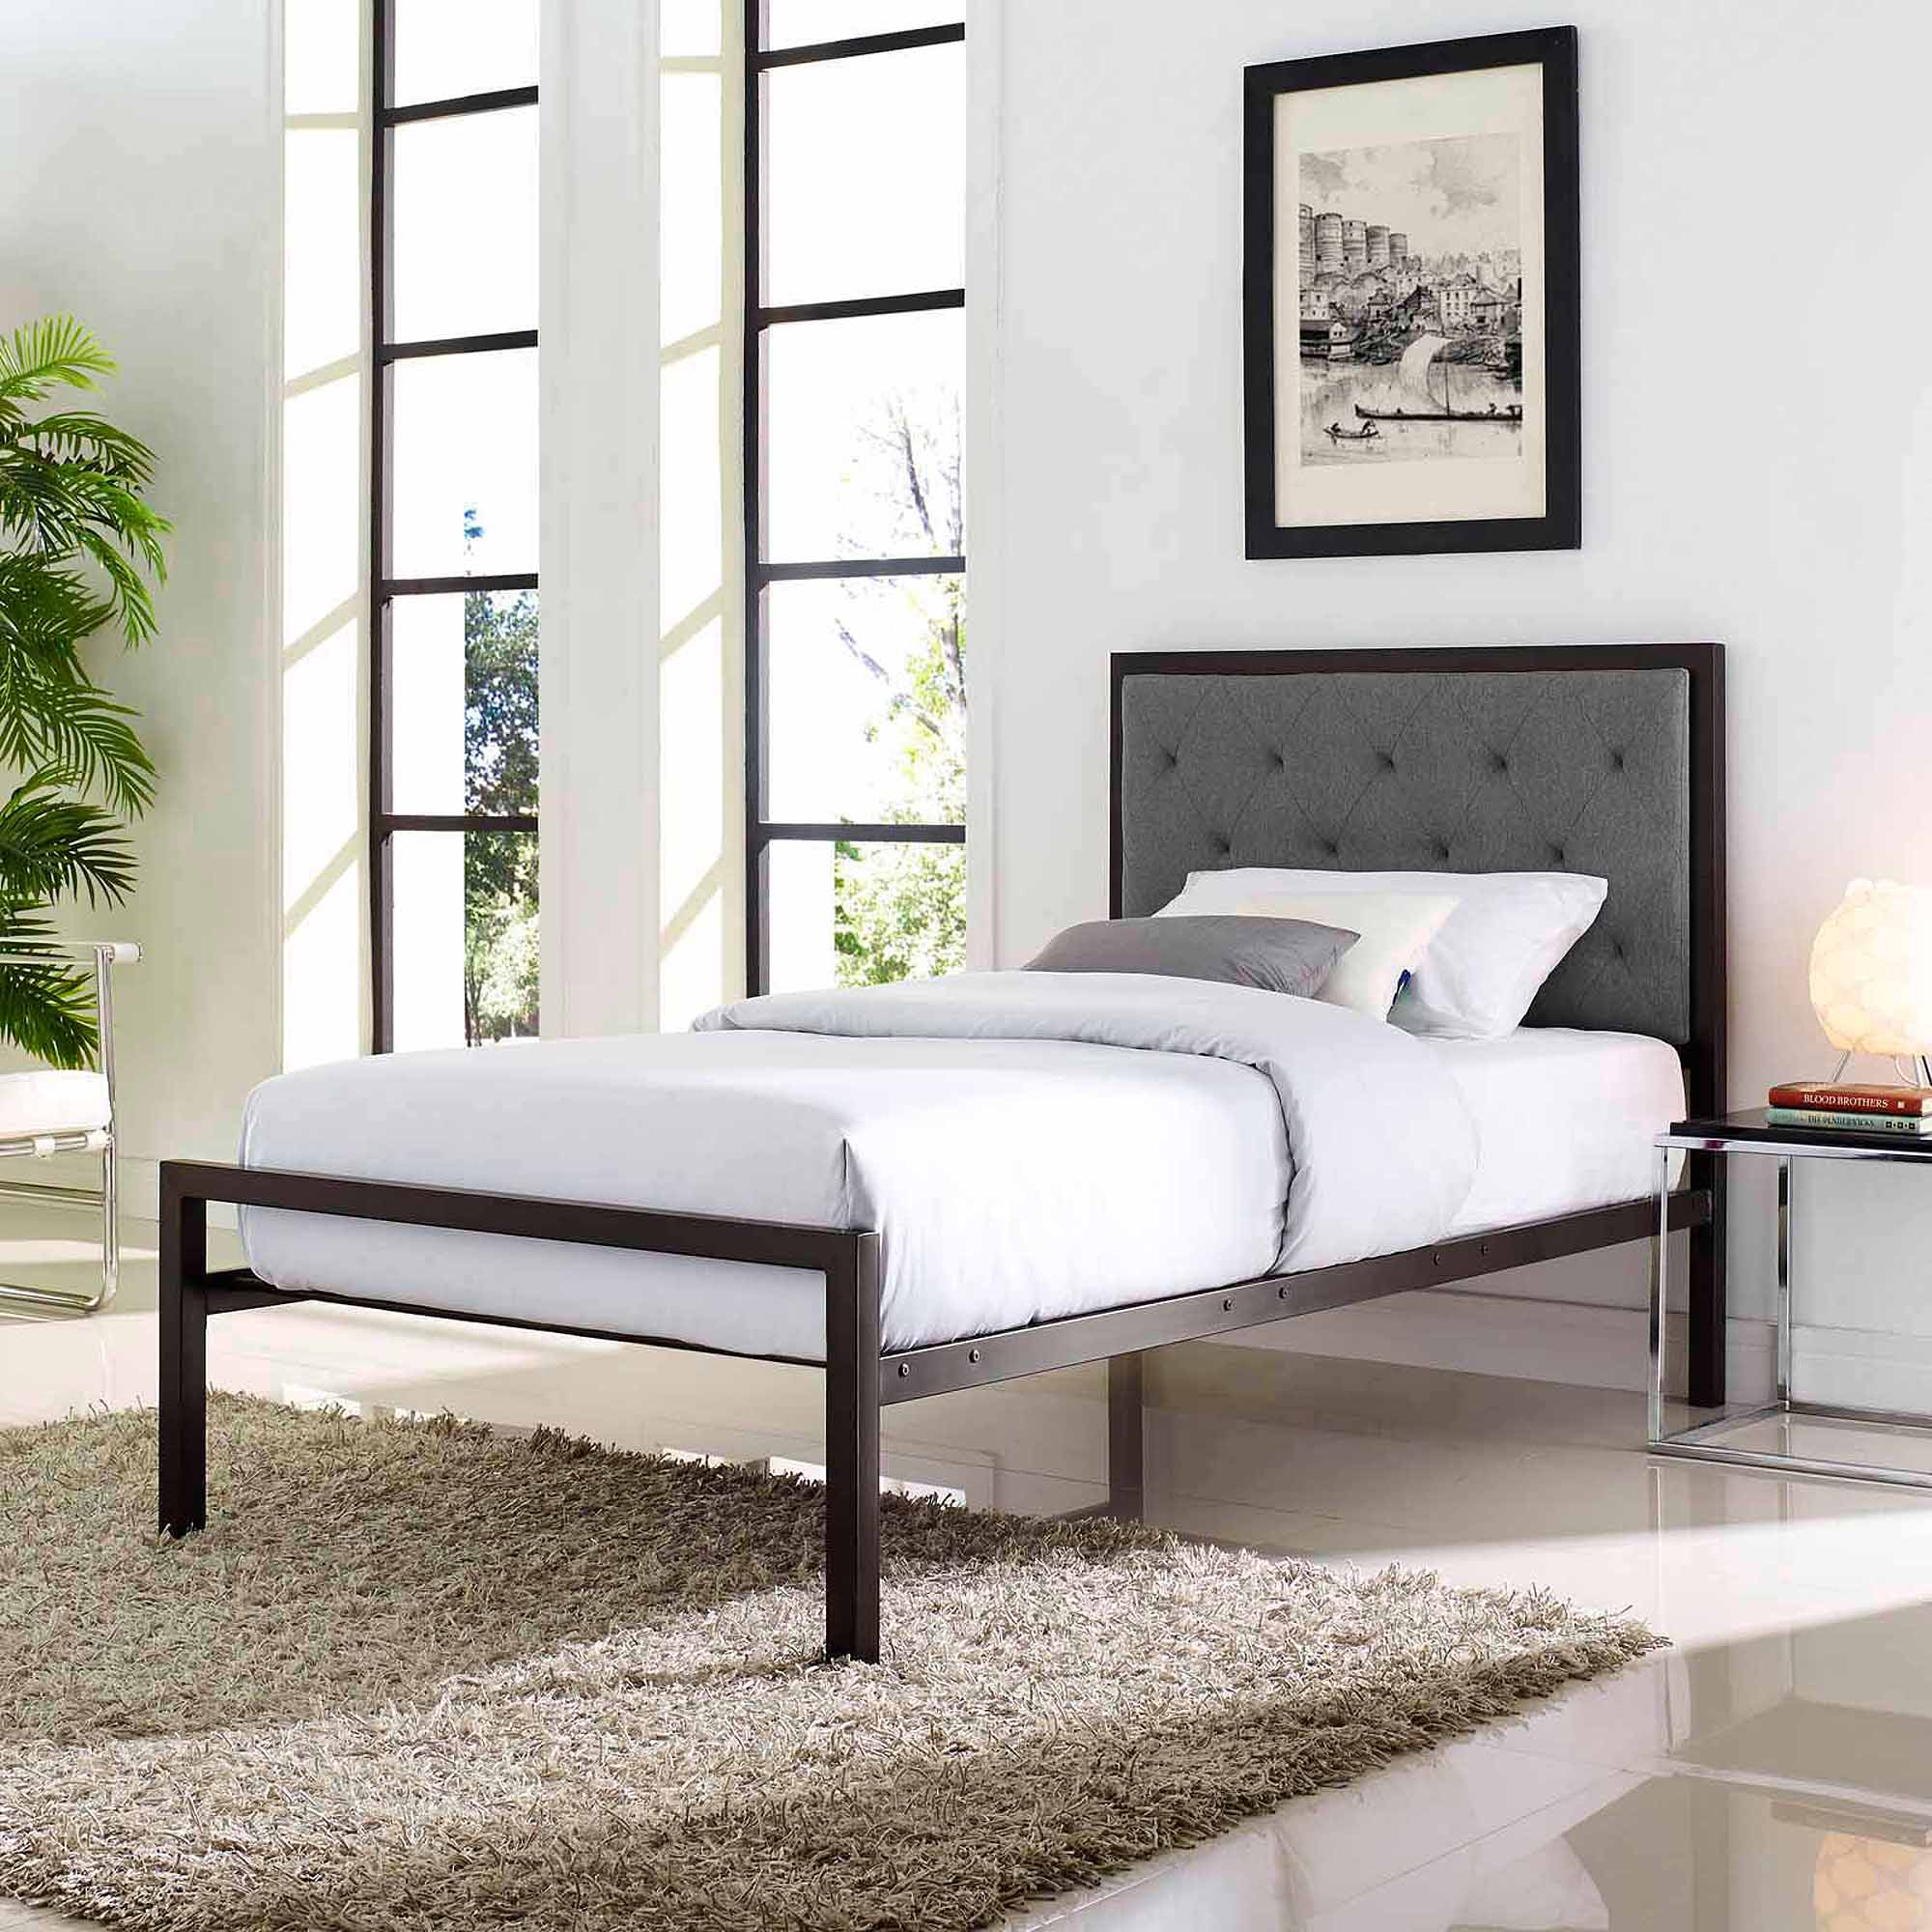 Modway Mia Twin Adult or Kids Steel Platform Bed, Multiple Colors